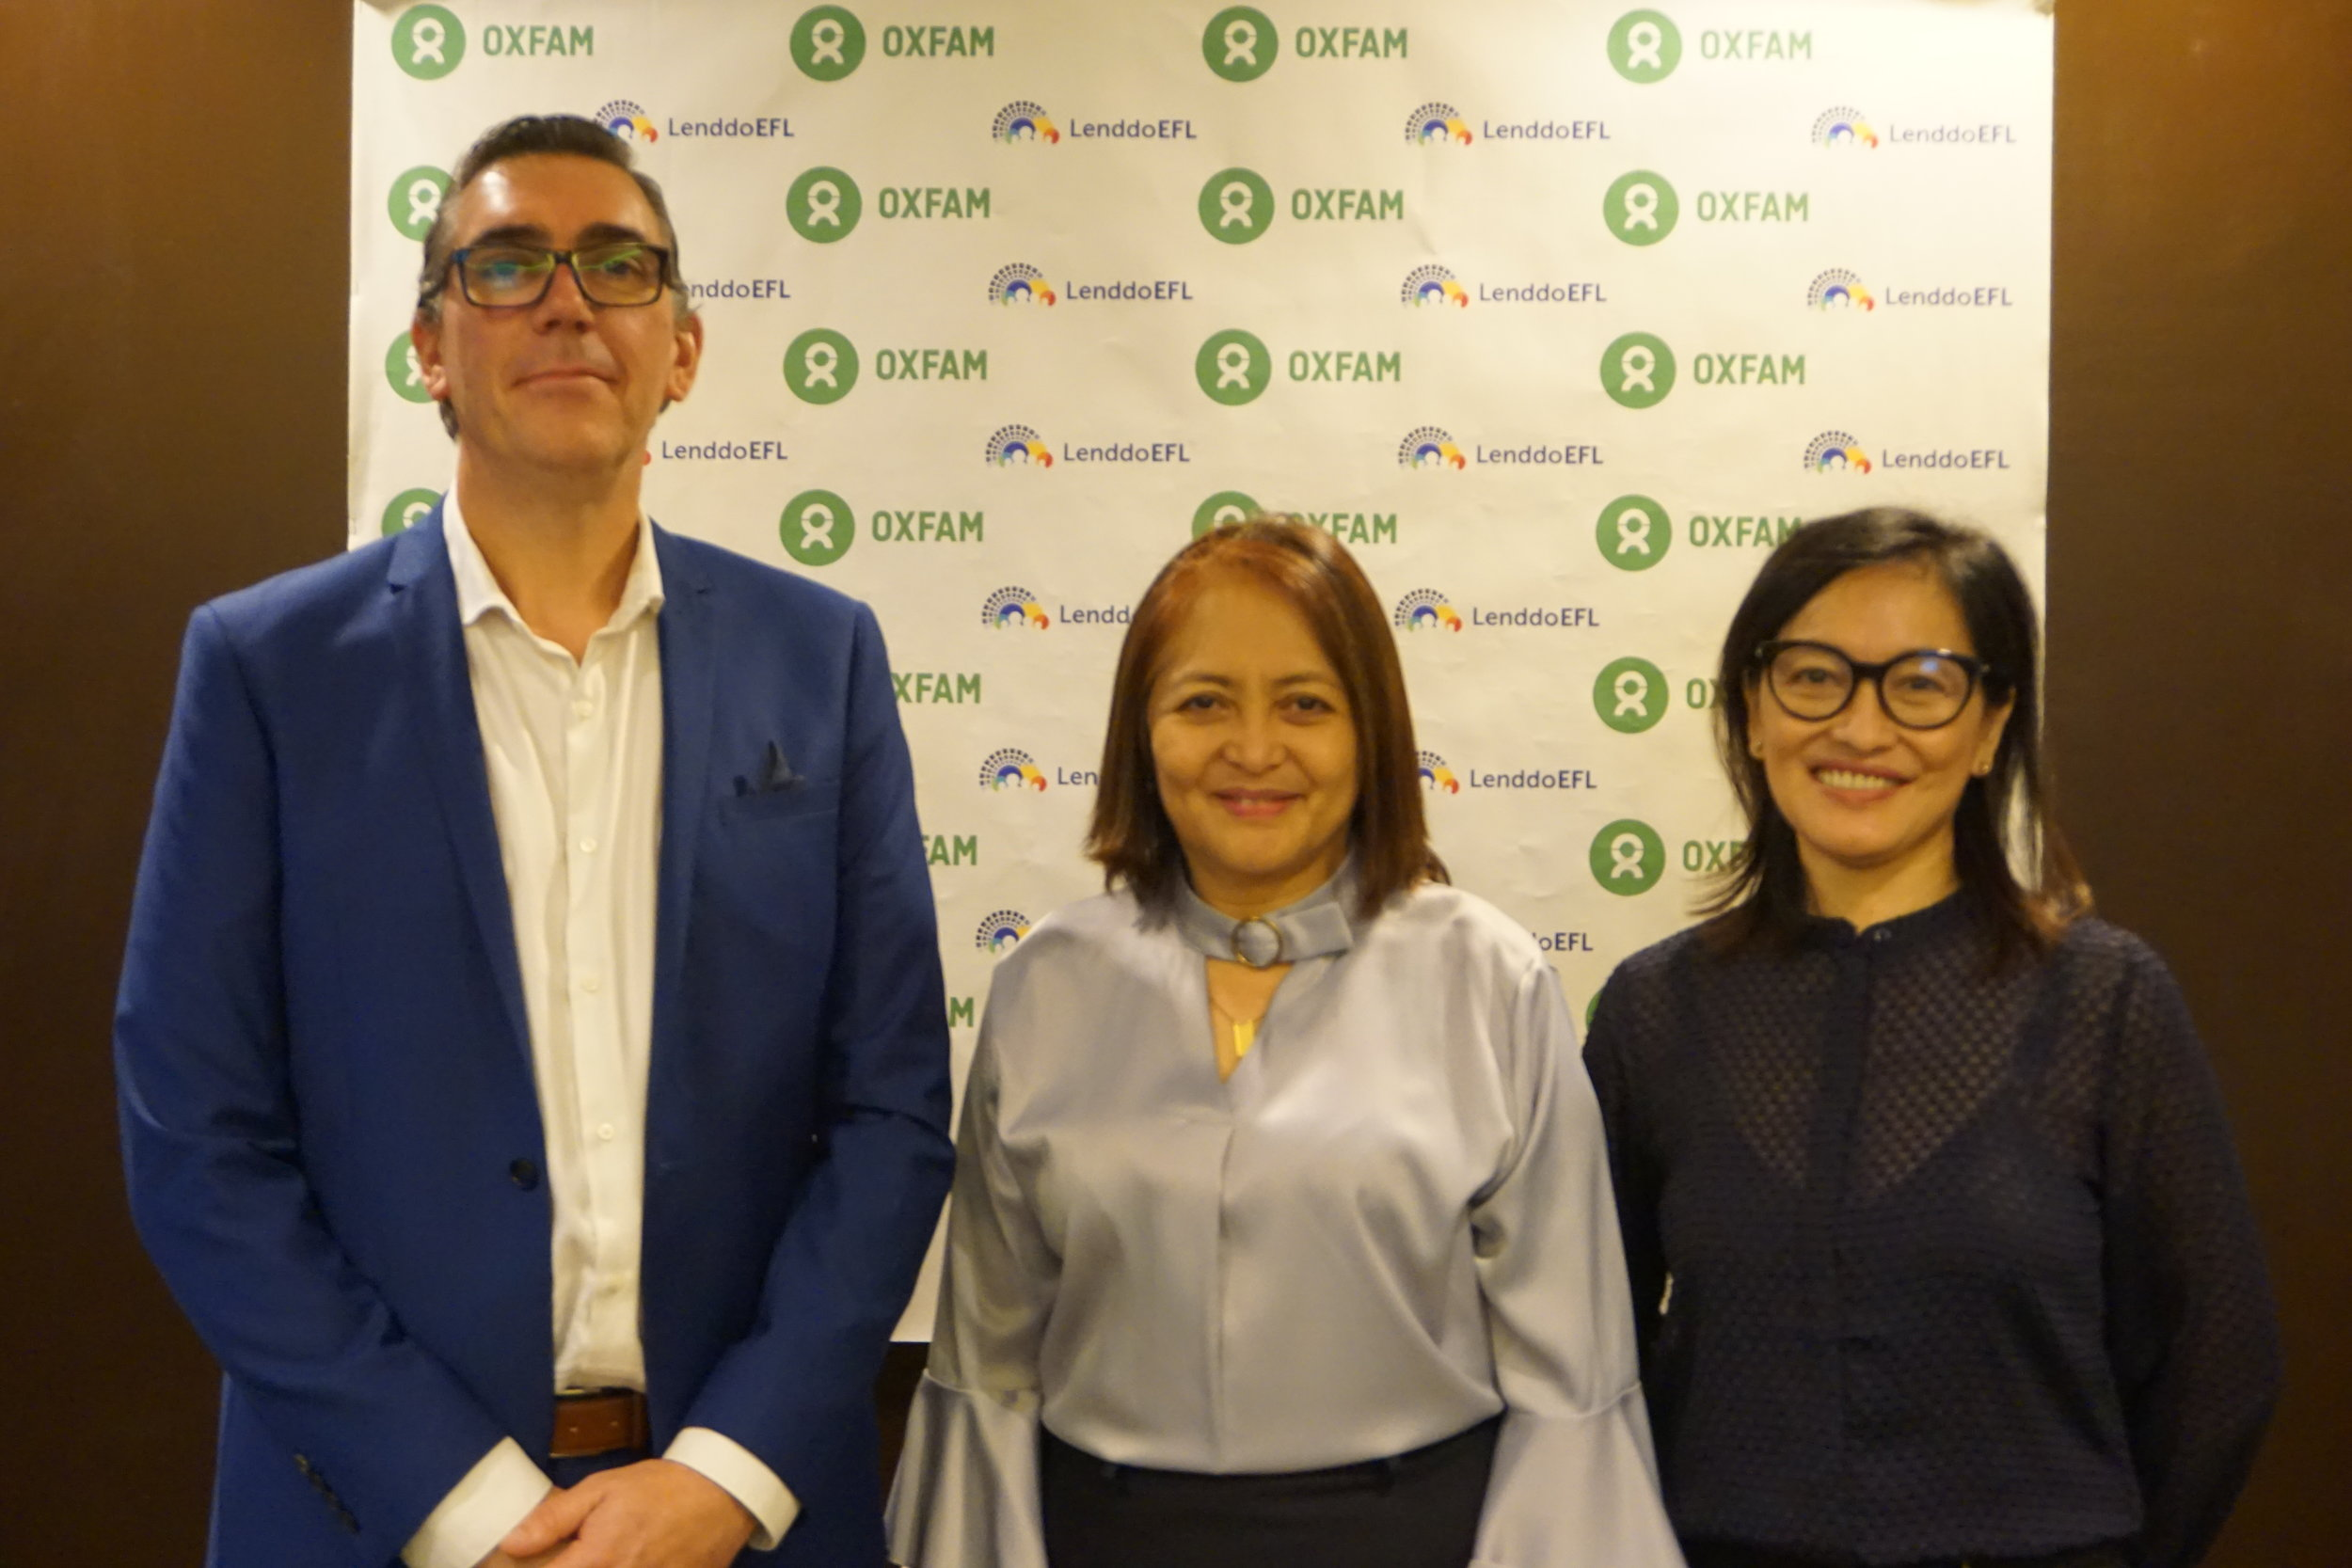 LenddoEFL CEO Paolo Montessori (left) and Oxfam Philippines Country Director Maria Rosario Felizco (right) during a meeting with BSP Deputy Governor Chuchi Fonacier (center) on June 6, 2019.